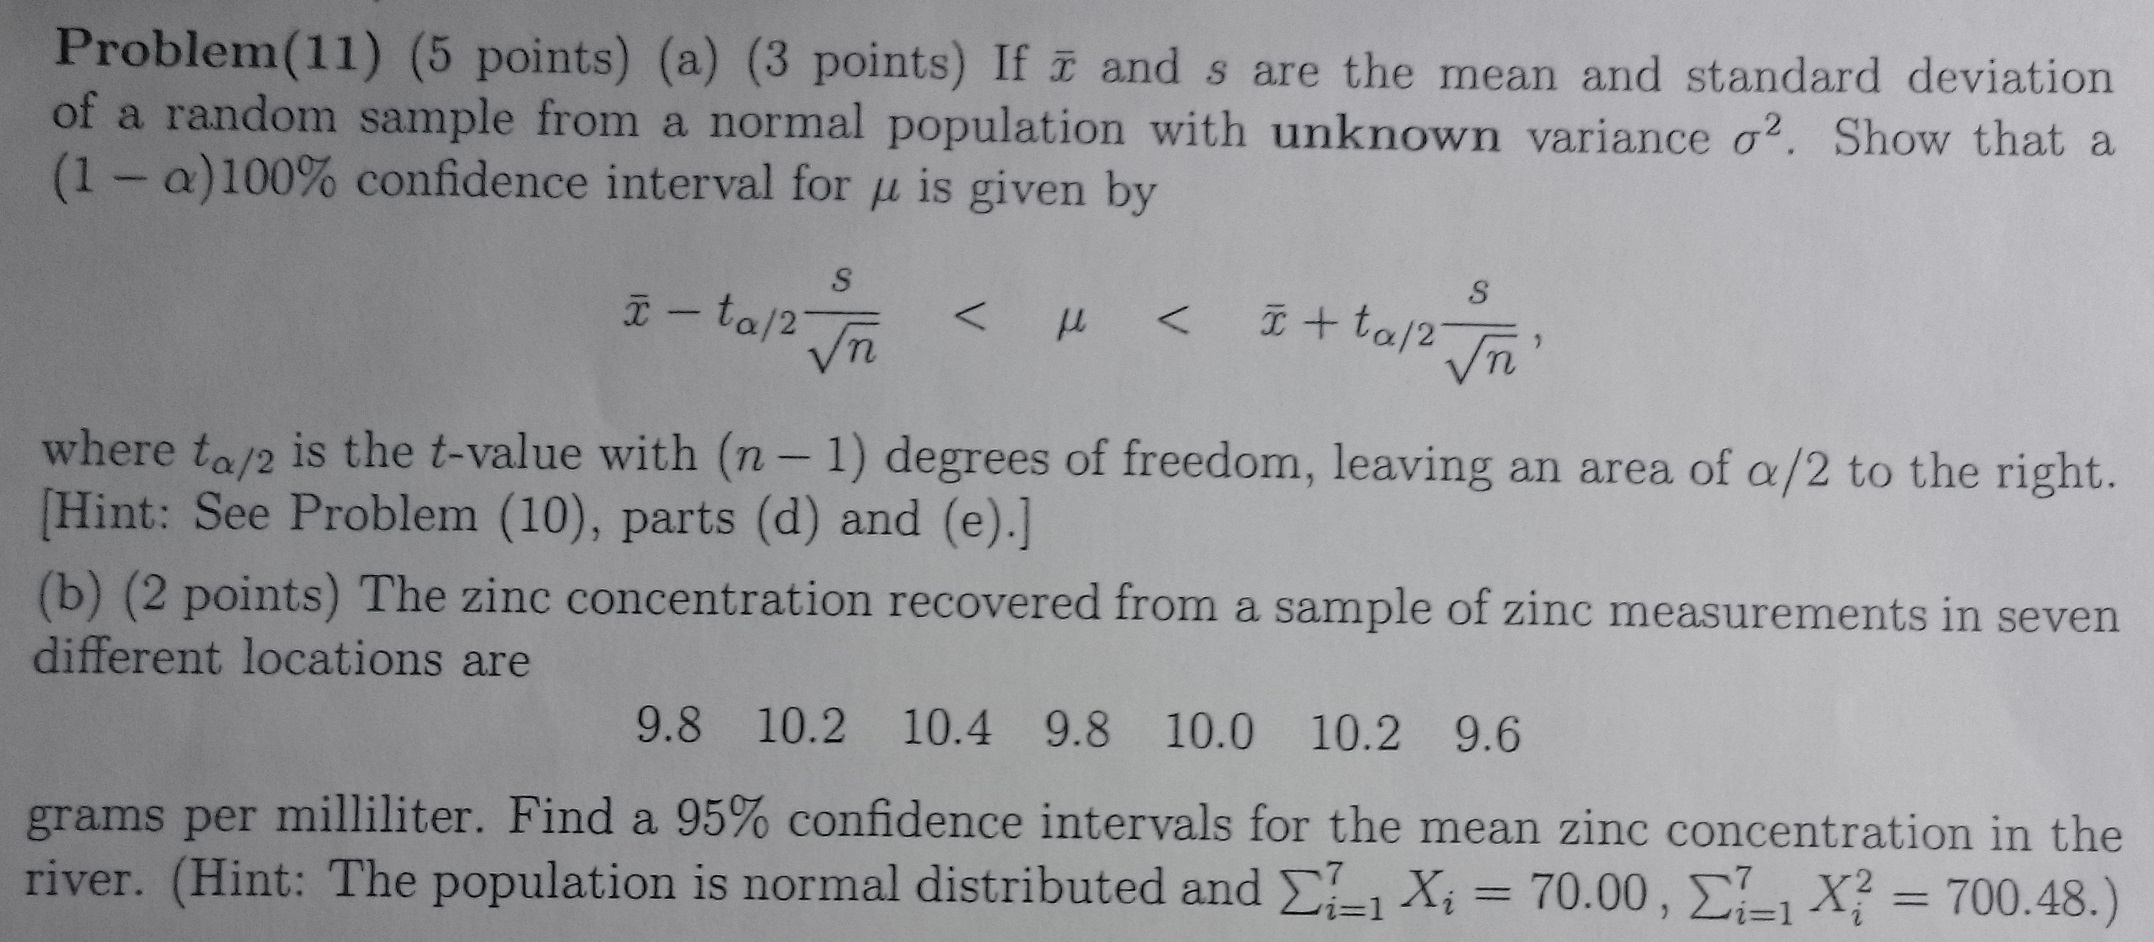 If X And S Are The Mean And Standard Deviation Of A Random Sample Form A